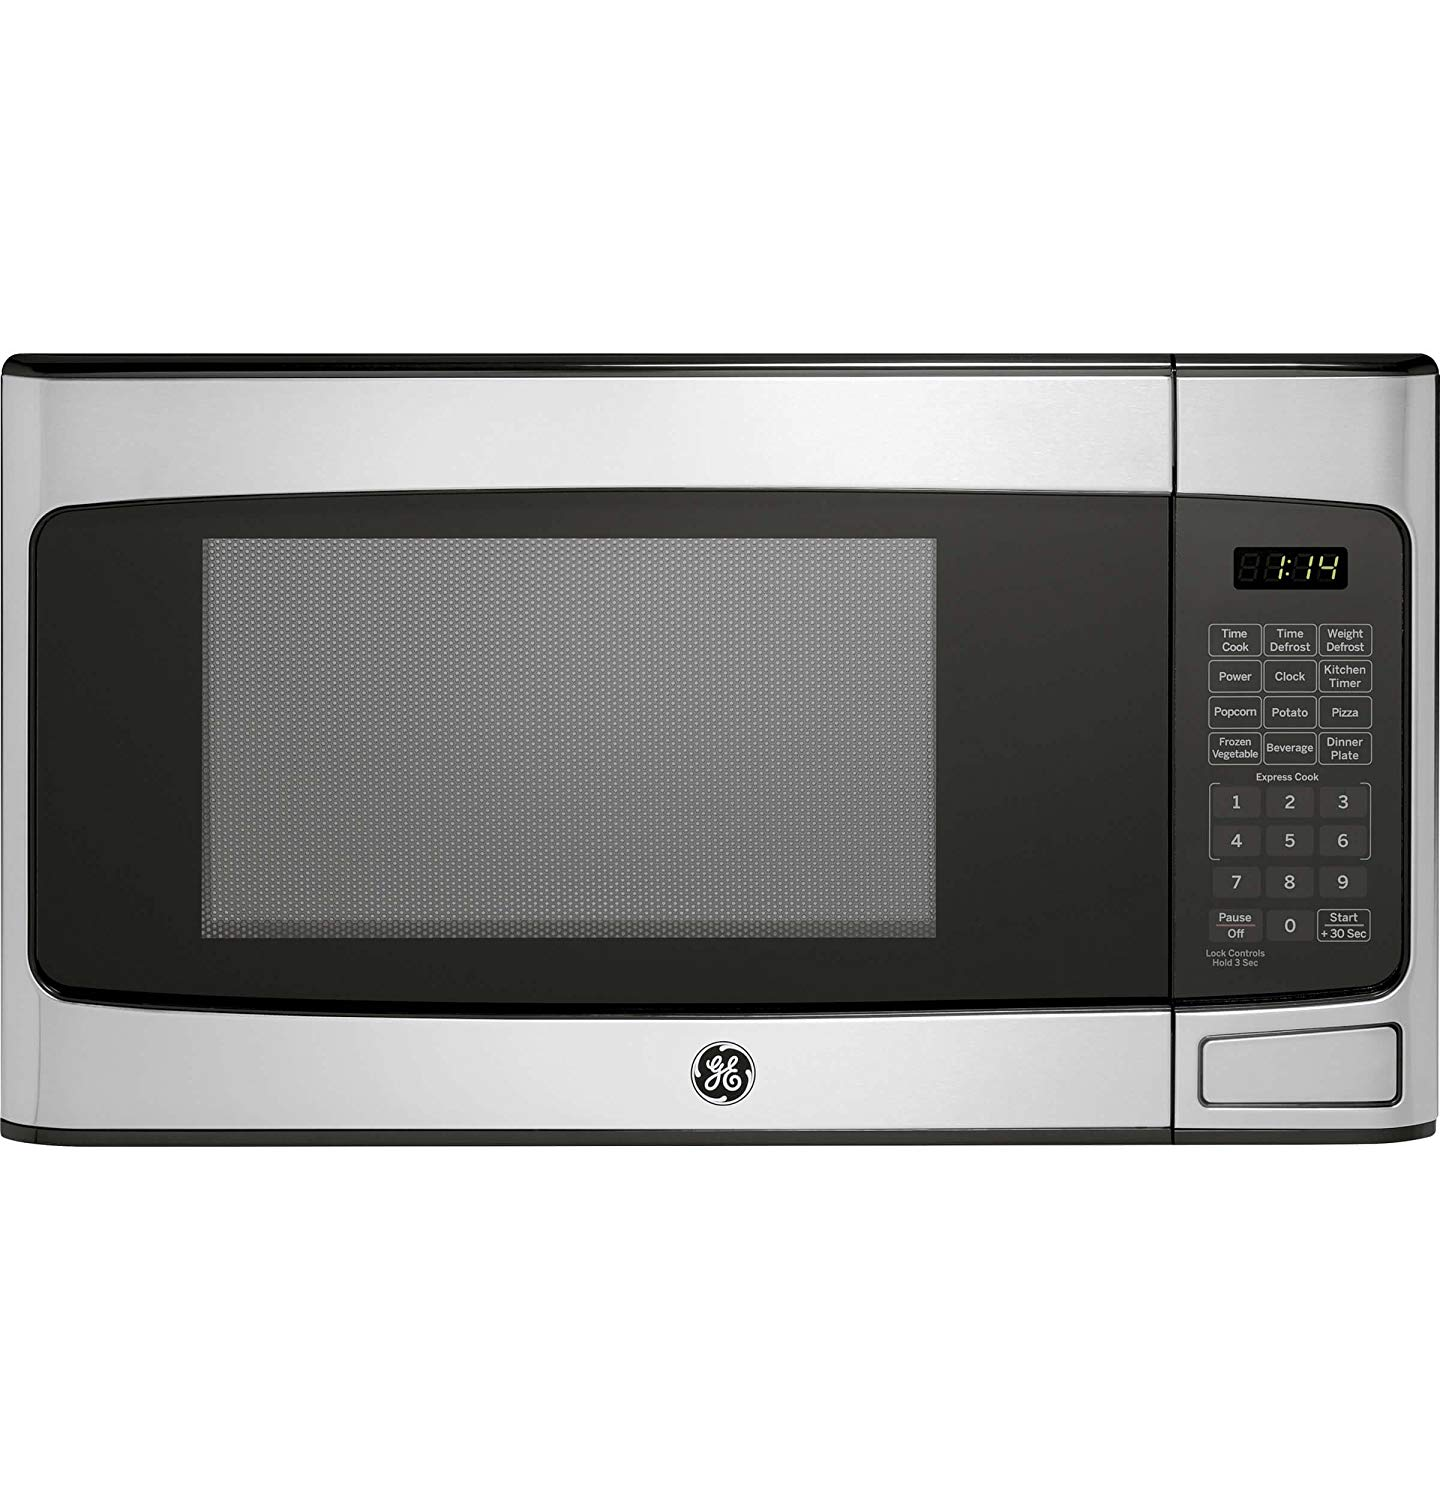 GE JES1145SHSS 1.1 Cu. Ft. Stainless Steel Countertop Microwave